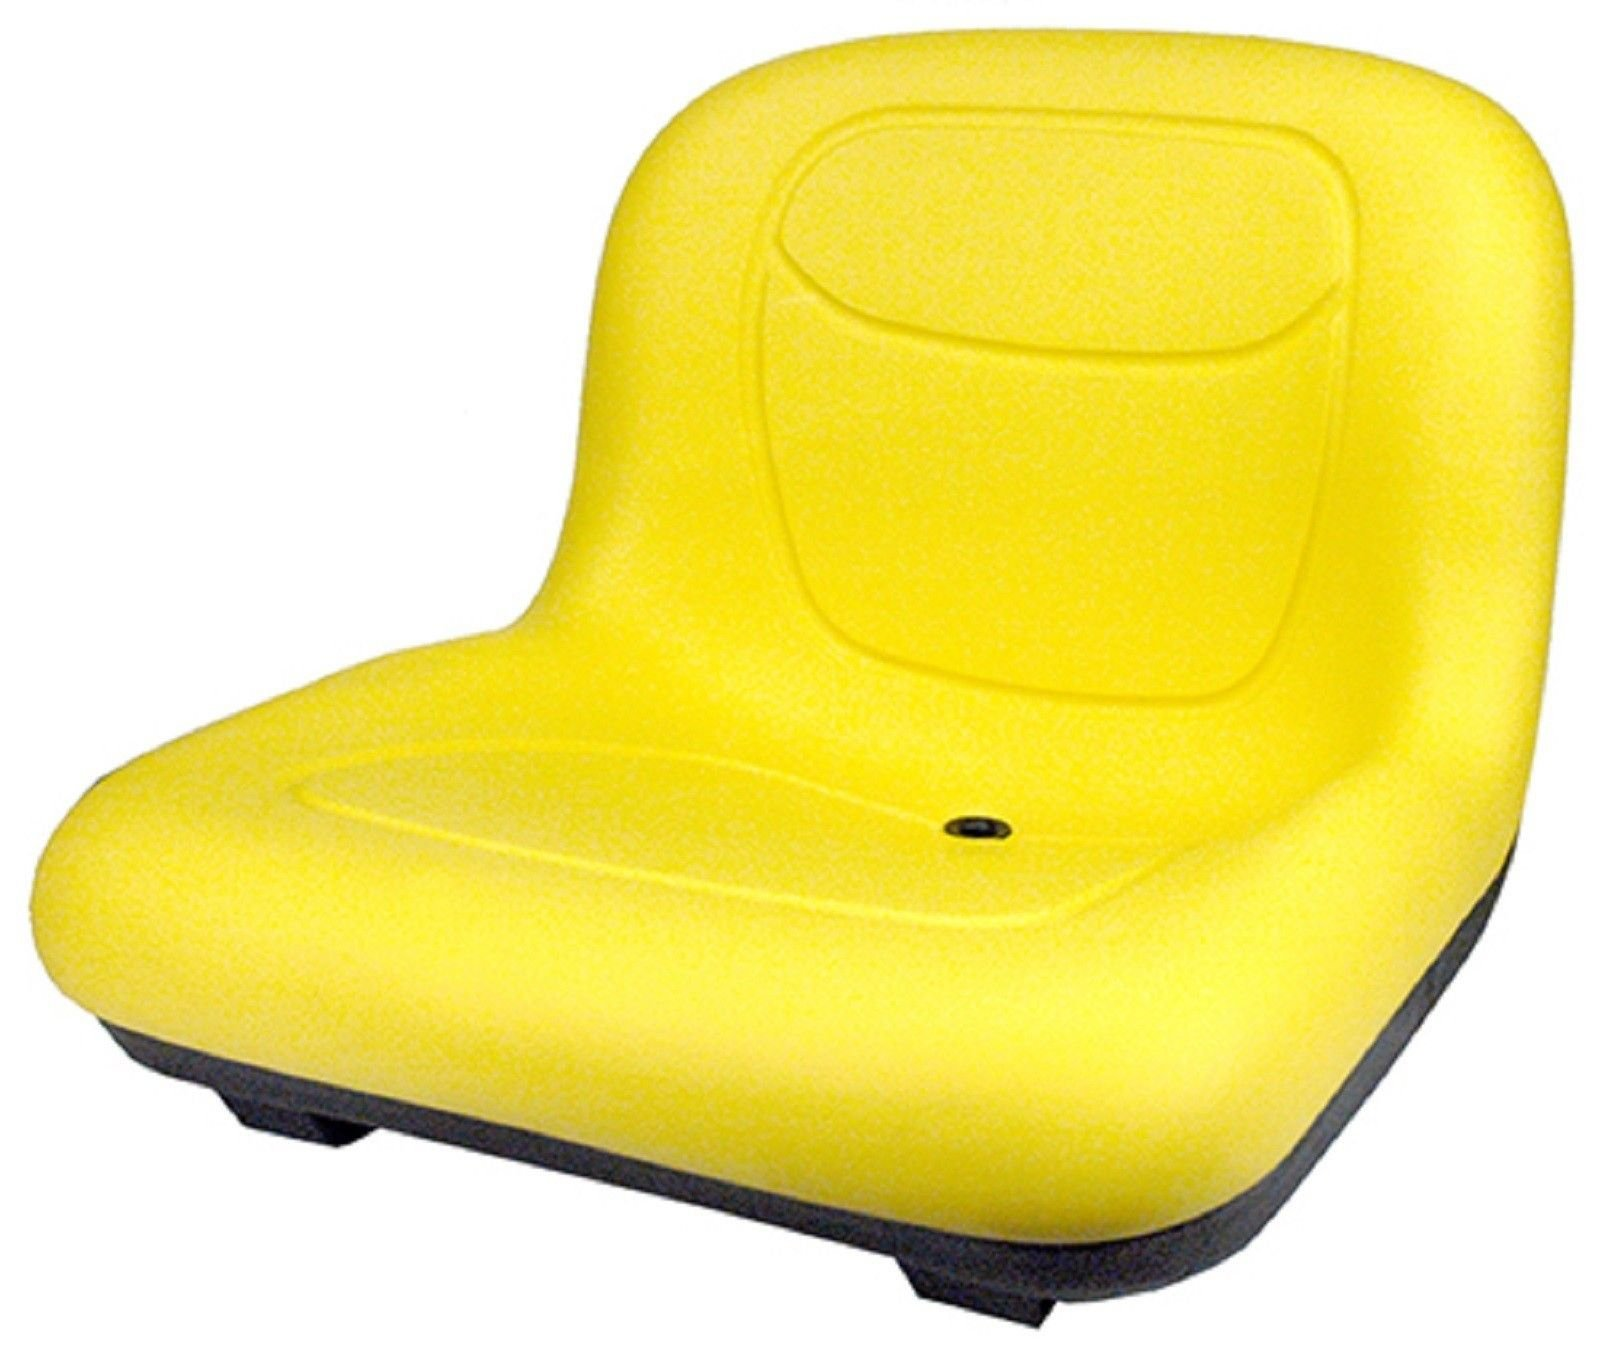 John Deere AM136044 Seat Assembly by Riding Mower